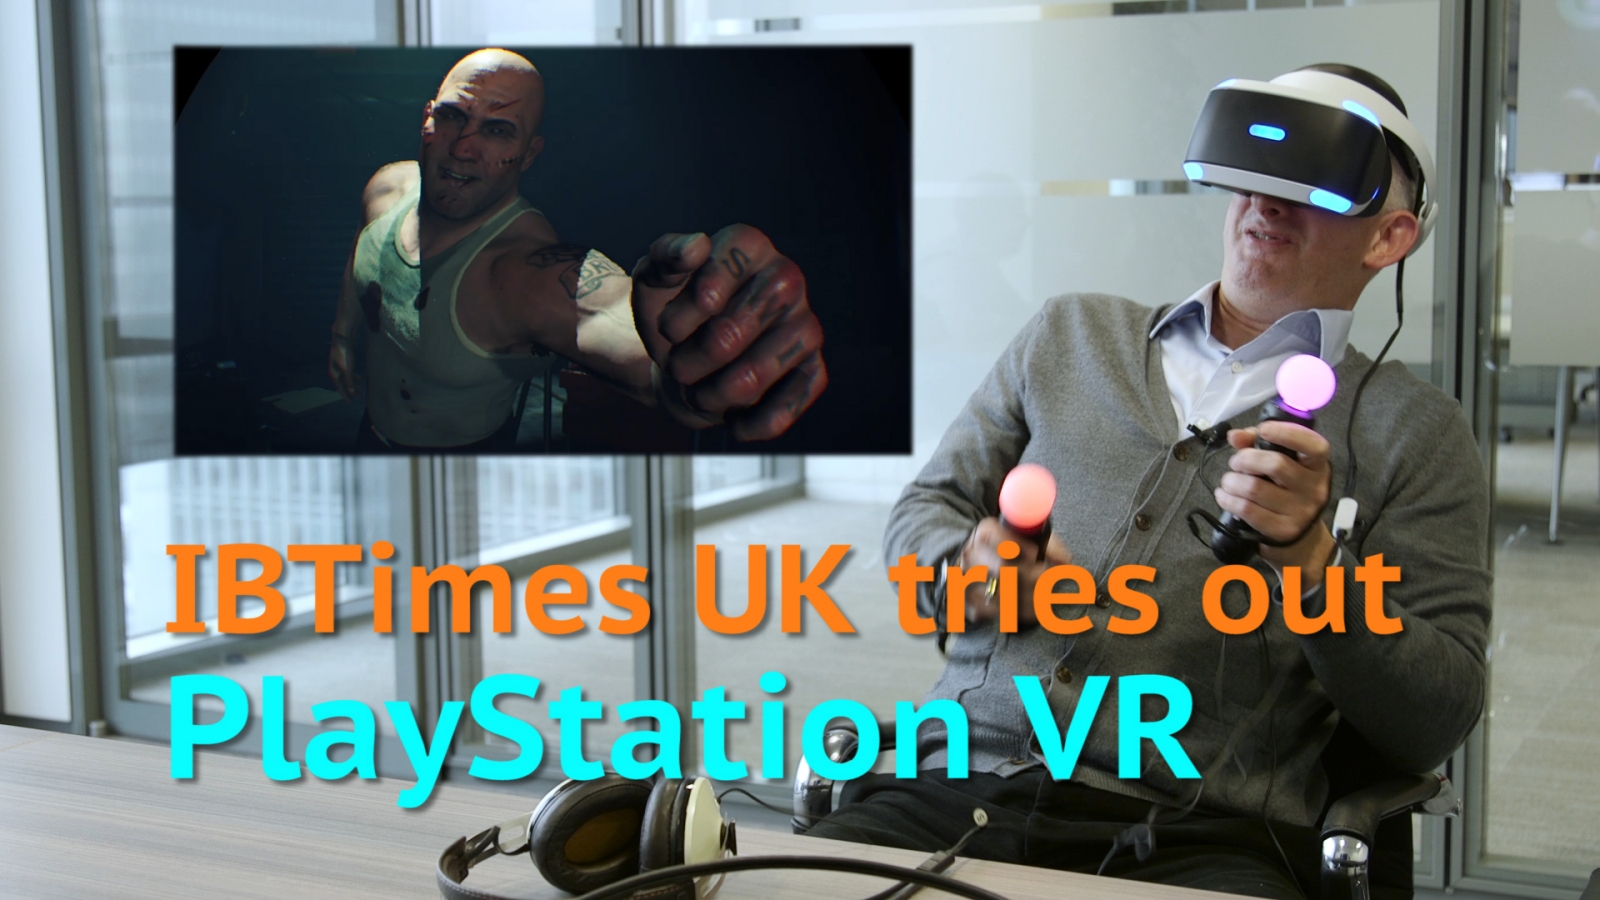 PLayStation VR reaction